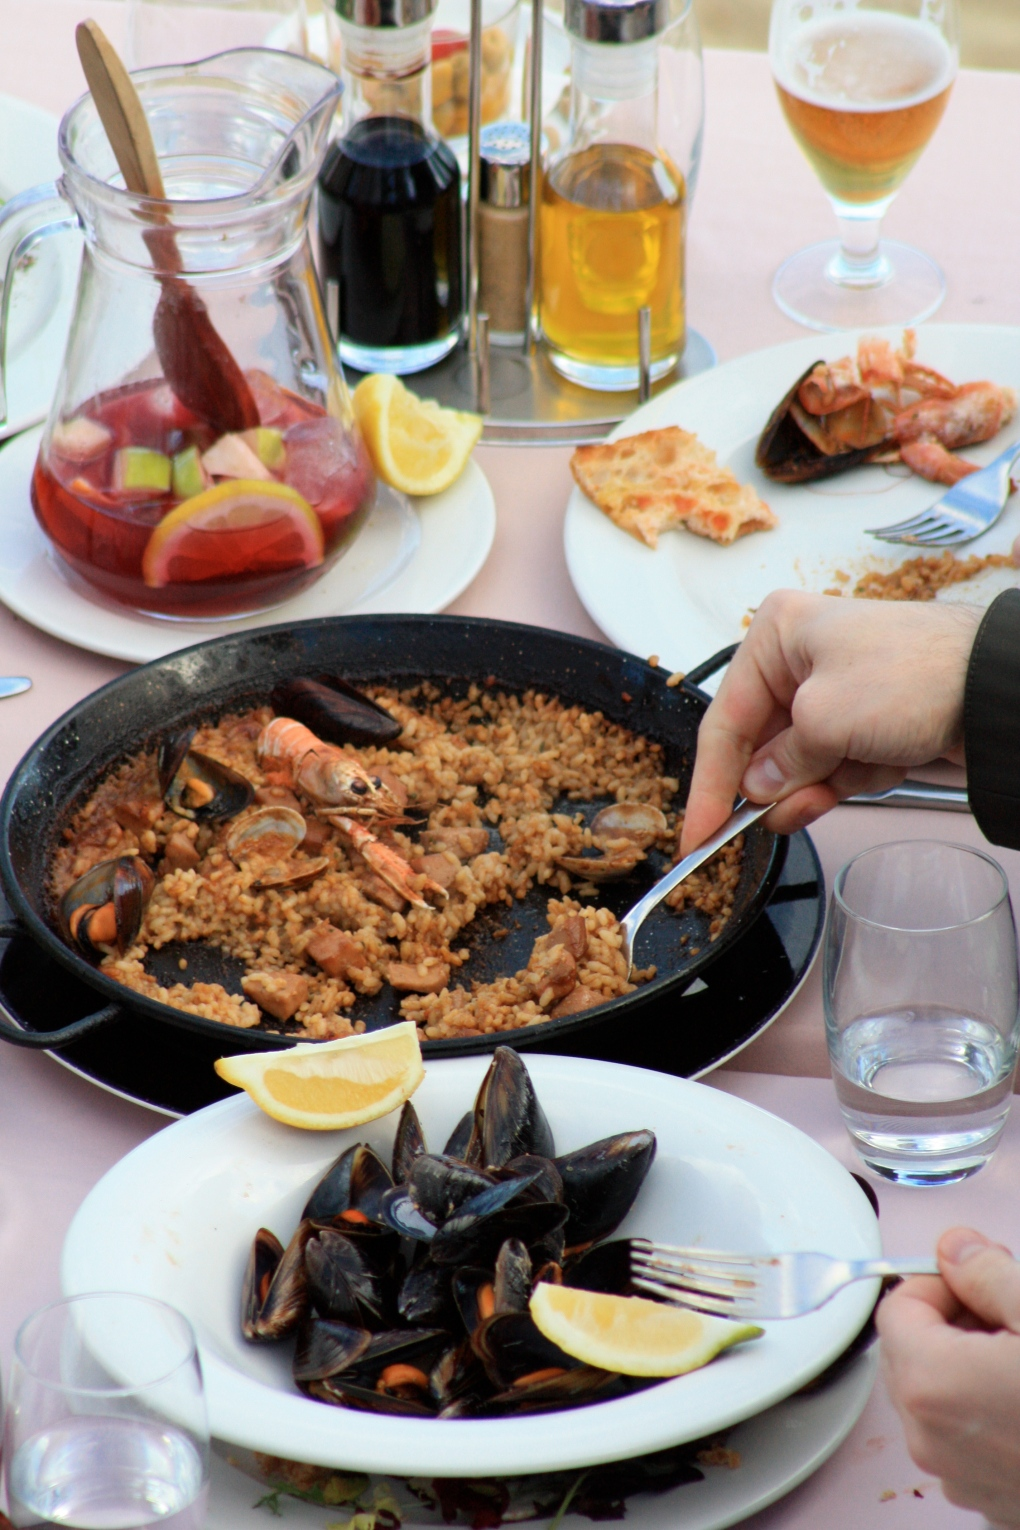 Famous Barcelona paella and sangria at the waterfront.